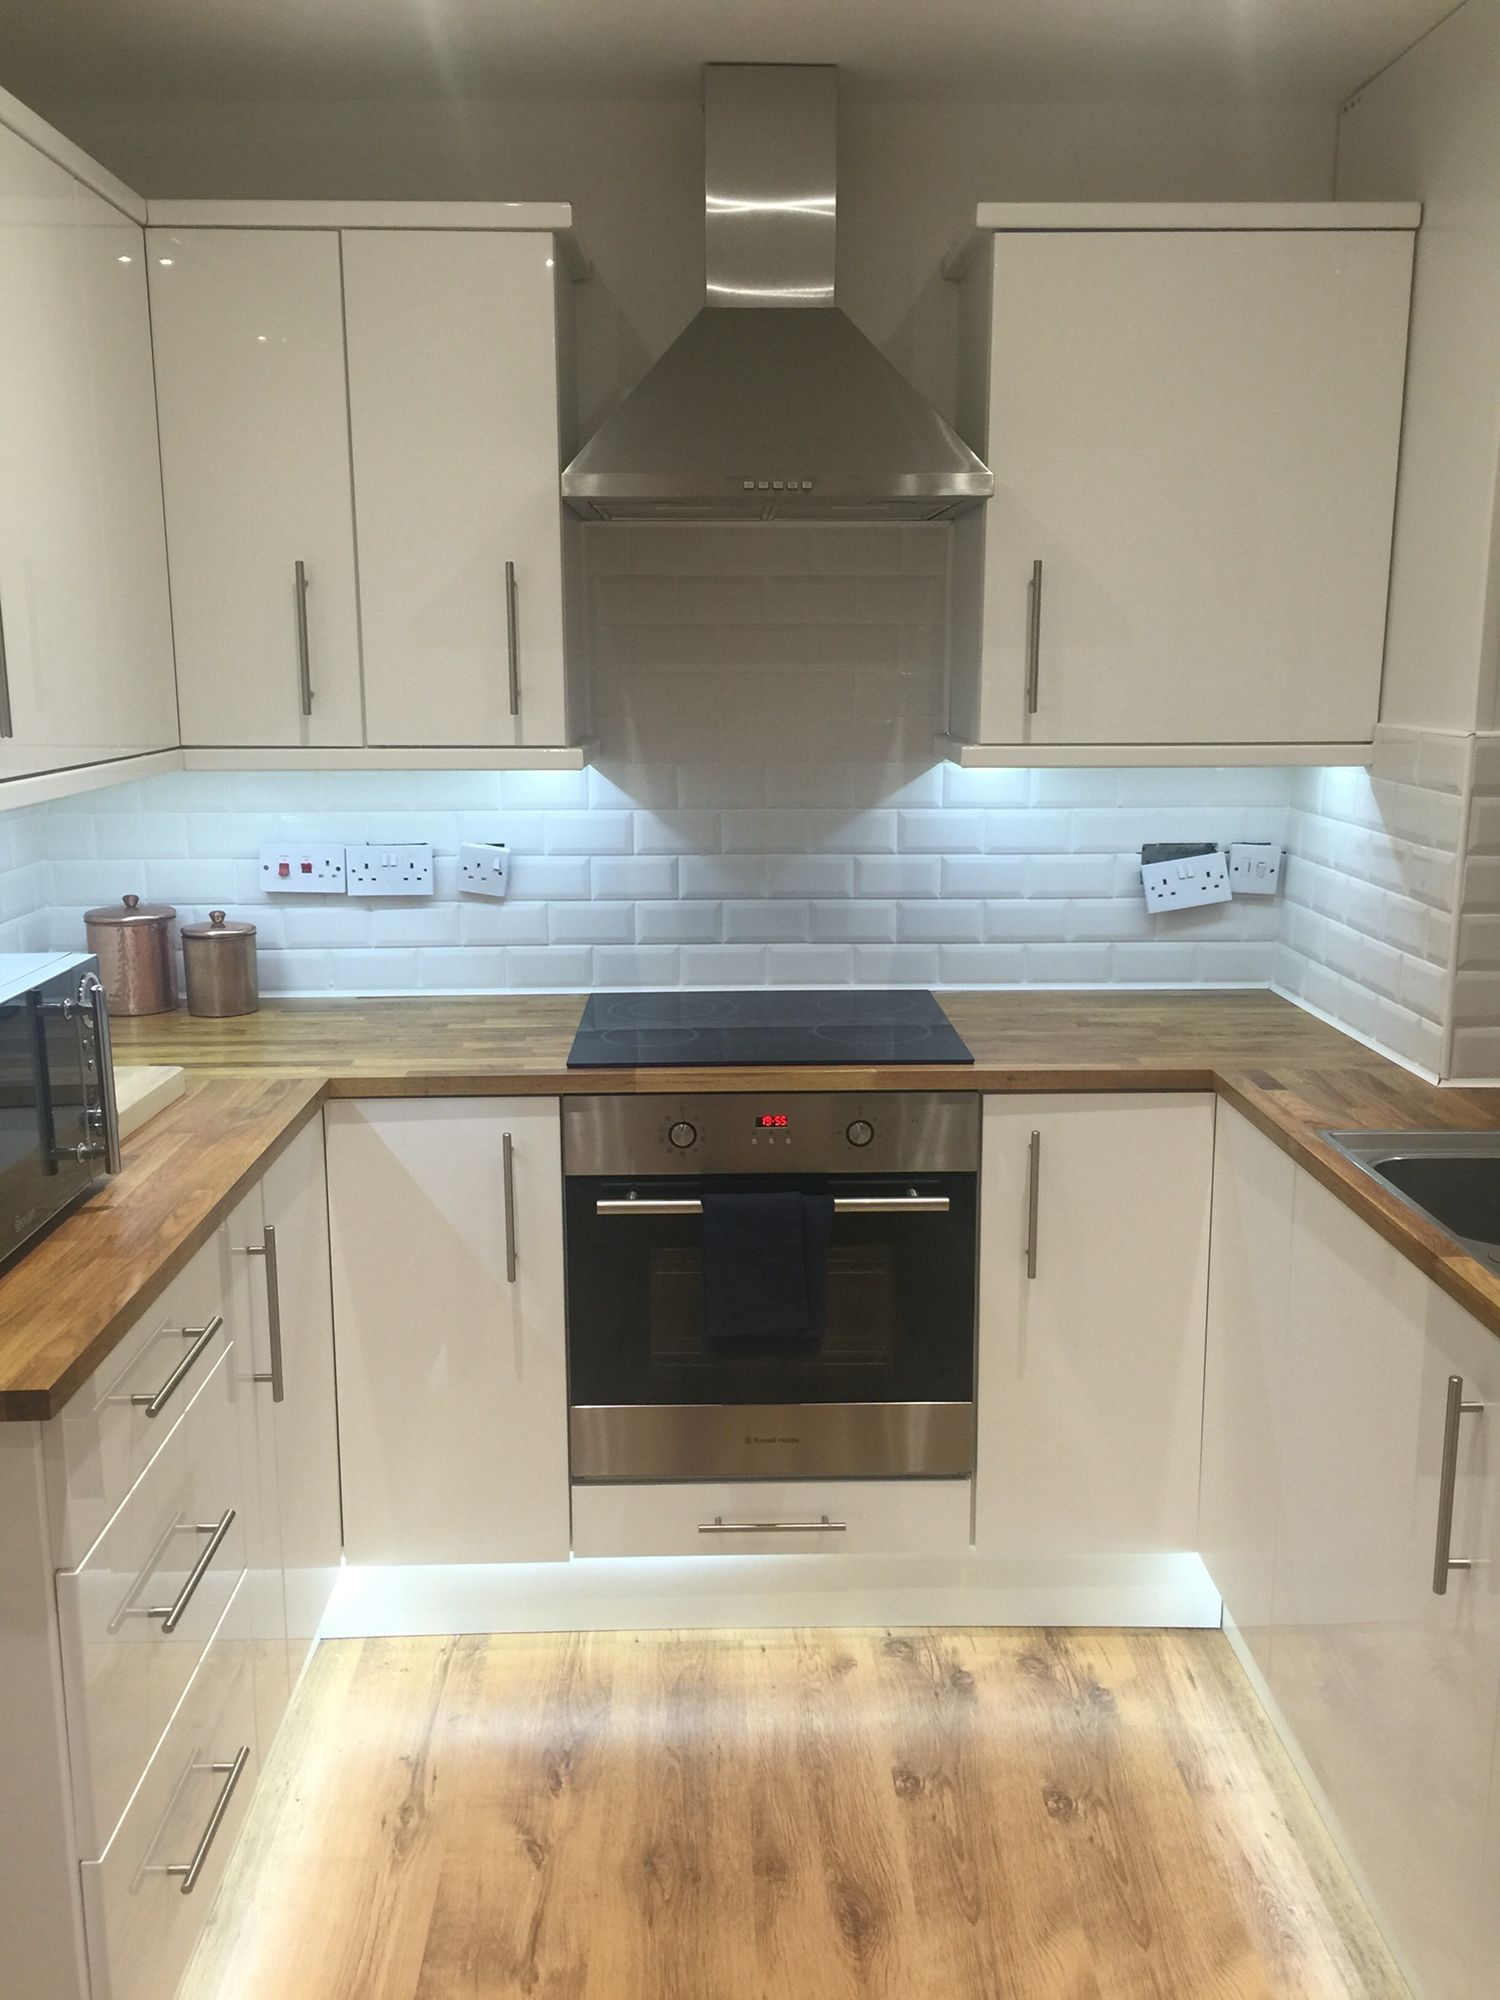 b&q kitchens touch kitchen faucets b q small white gloss wooden subway tiles homely wares